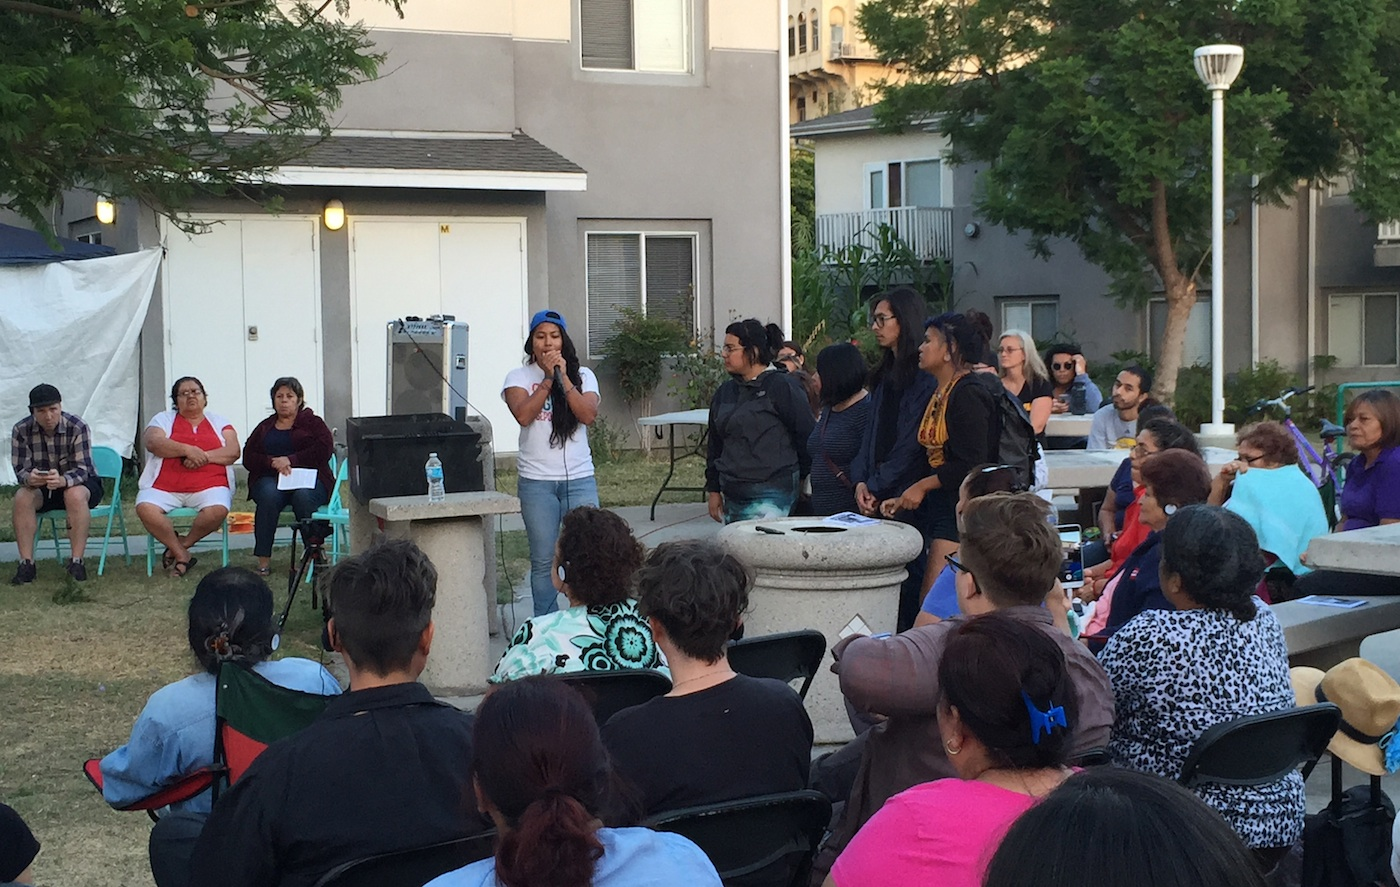 Members of Defend Boyle Heights address the crowd at Pico Gardens